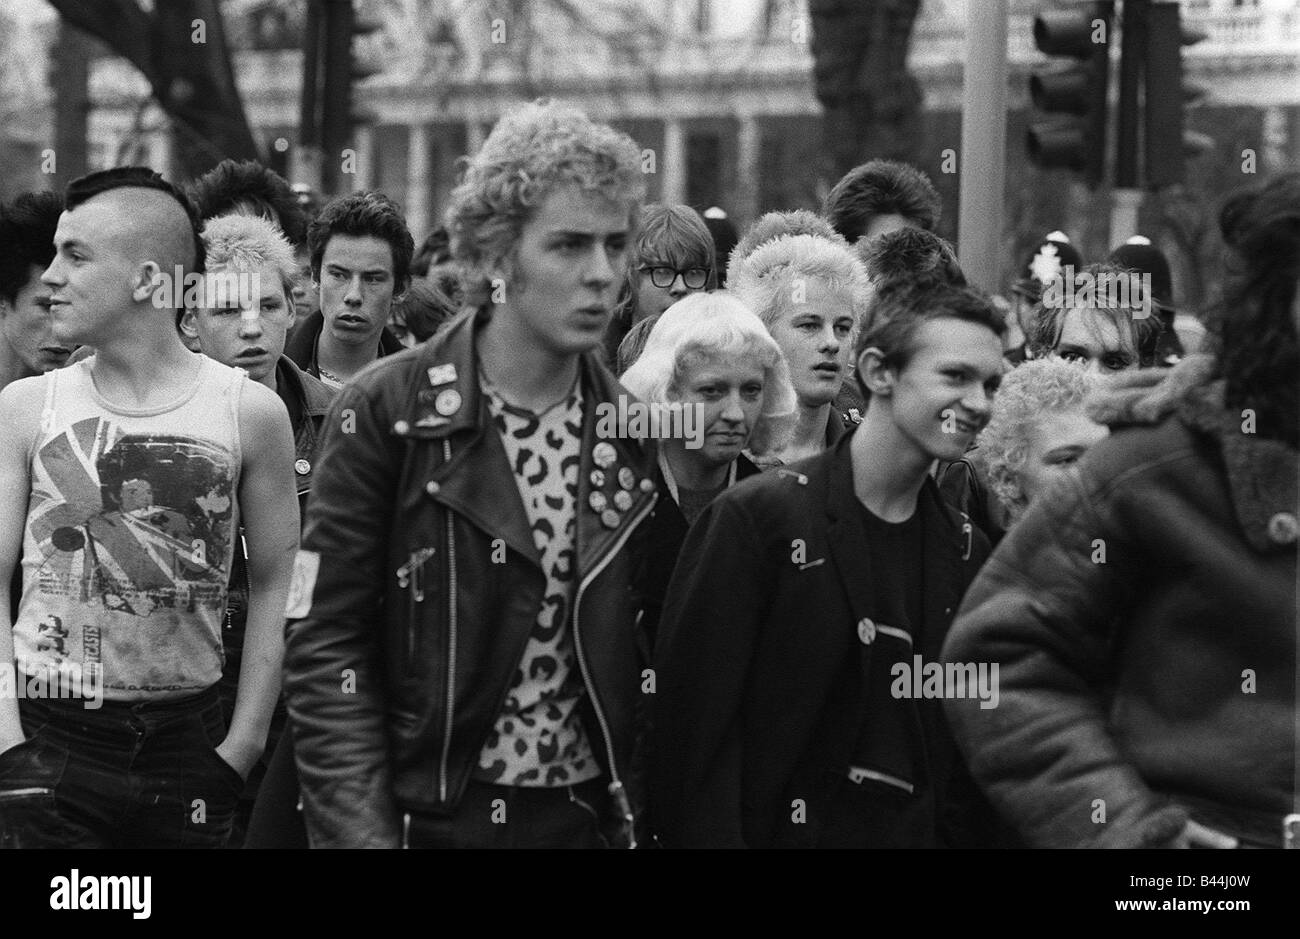 Punks gather in London for a march 1980 - Stock Image